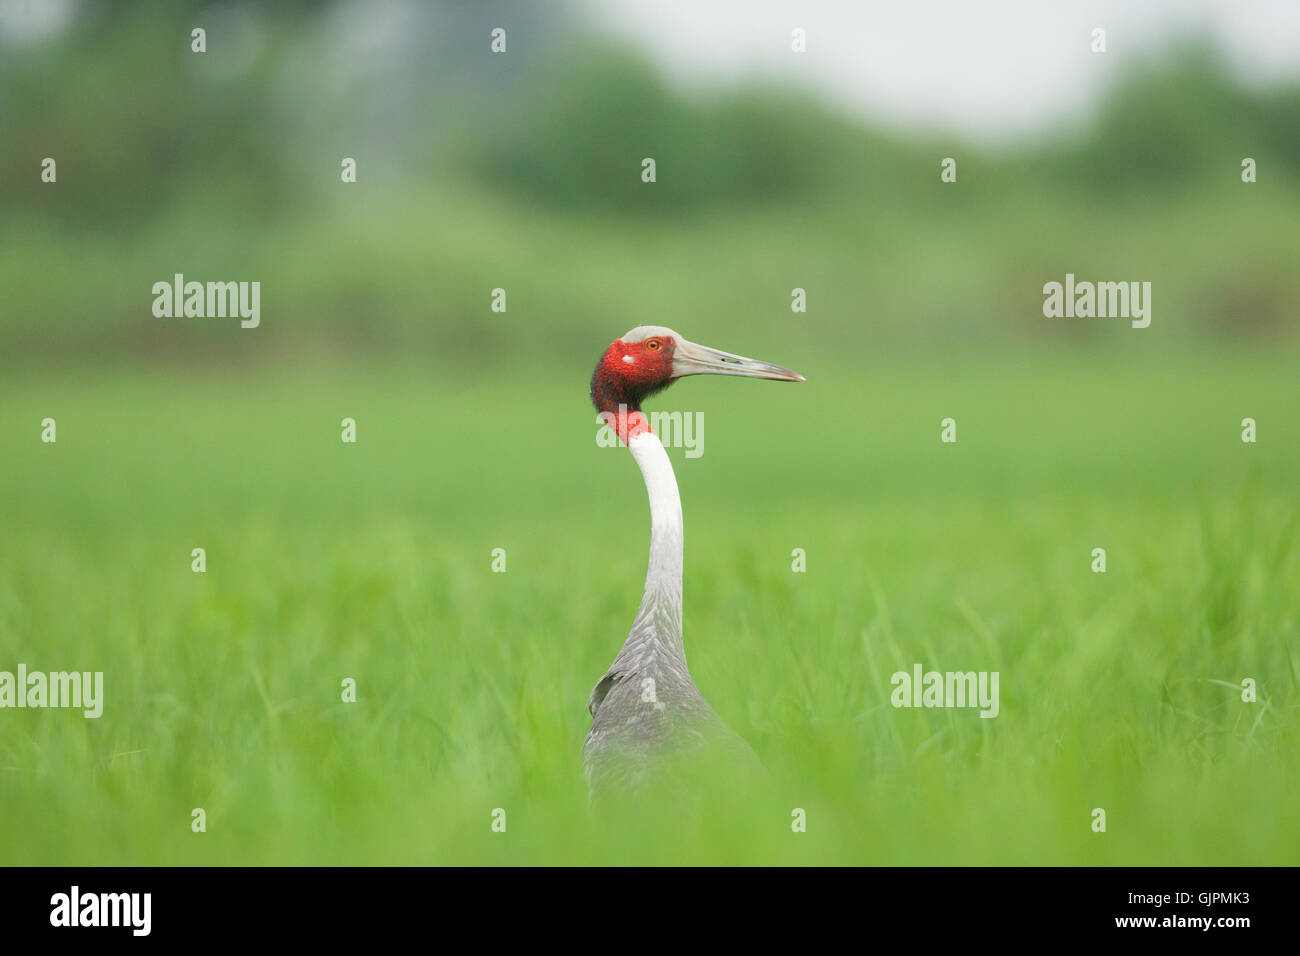 The tallest bird in flight Sarus Crane is a majestic view with ts red head and grey body and beak in Bharatpur Keoladeo - Stock Image